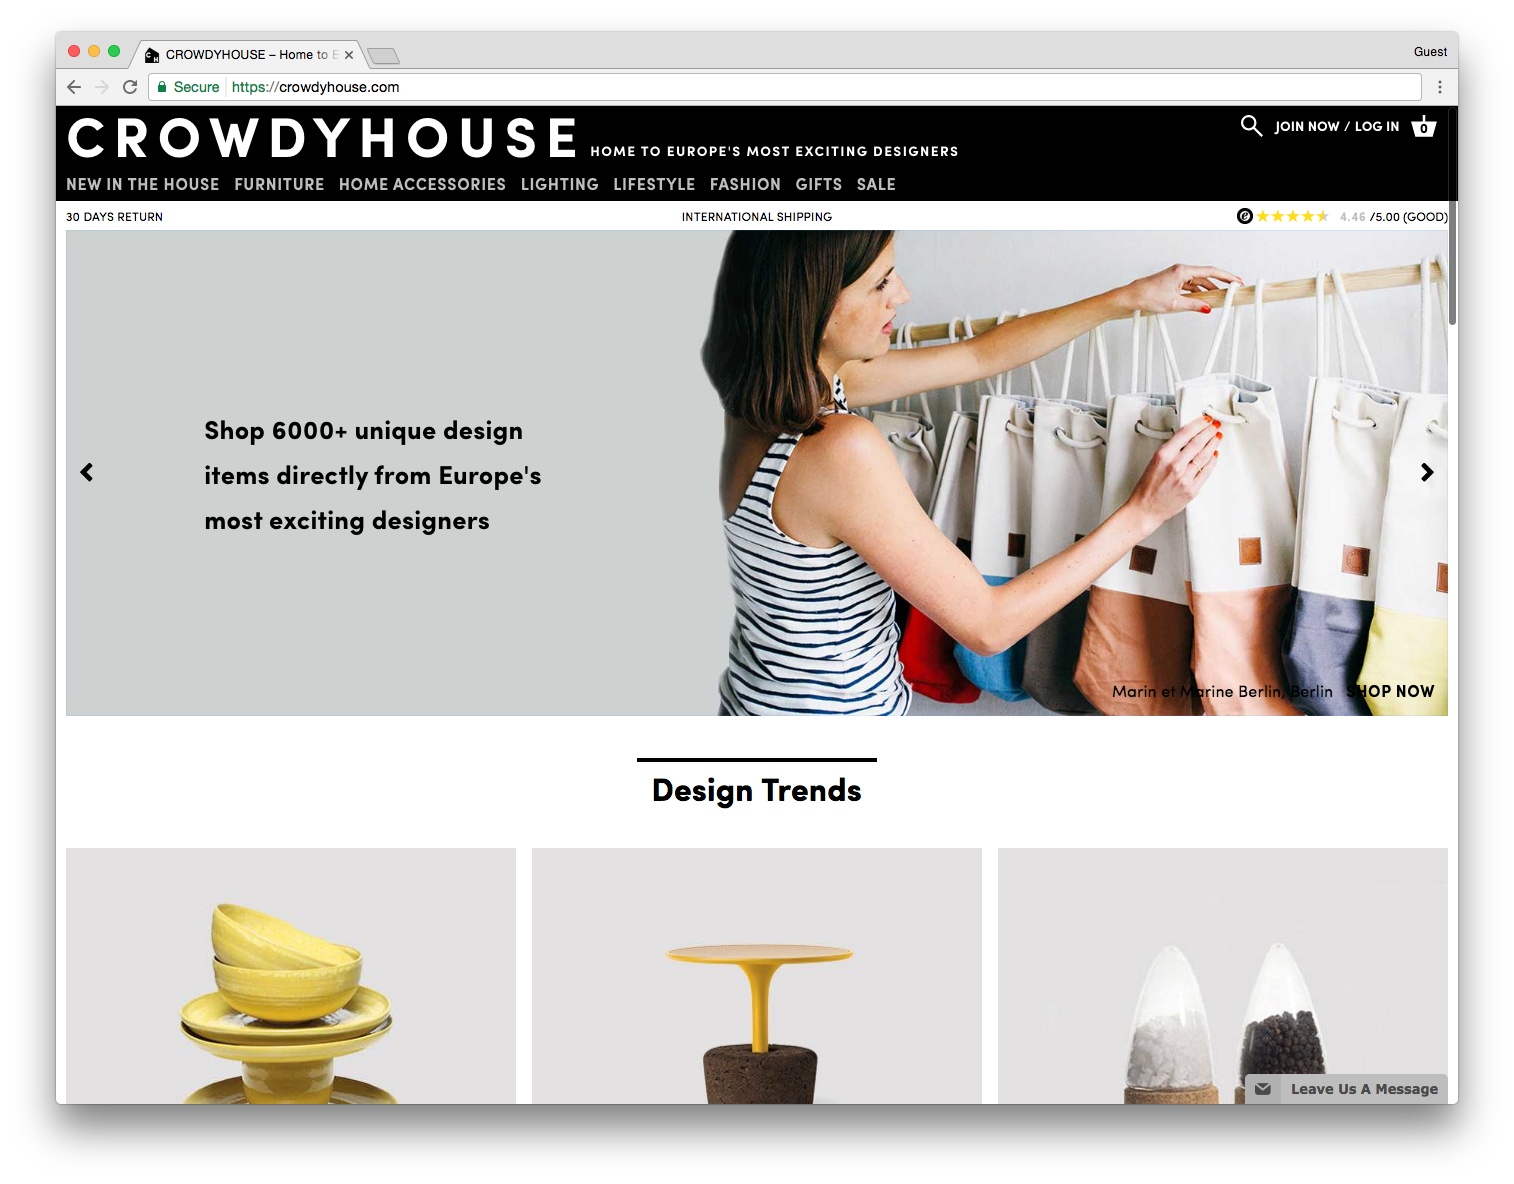 CROWDYHOUSE Home Page